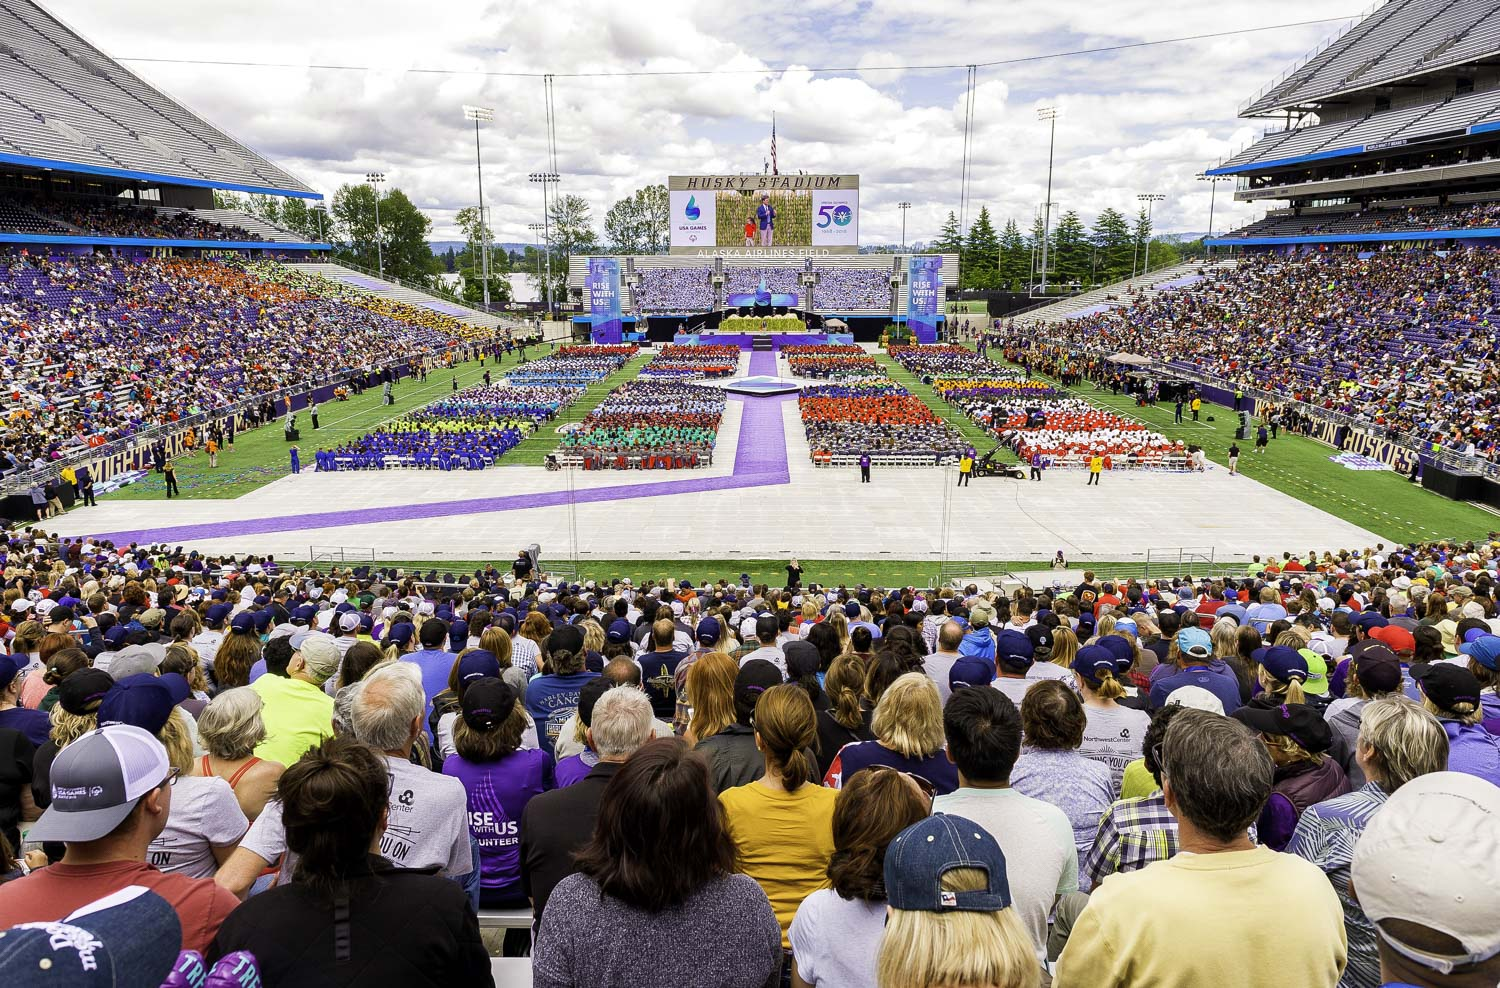 Timothy Shriver, Chairman of the Board of Directors of Special Olympics, addresses the crowd during the Opening Ceremony of the USA Games on the Alaska Airlines Field of Washington University's Husky Stadium in Seattle, Washington on July 1, 2018.